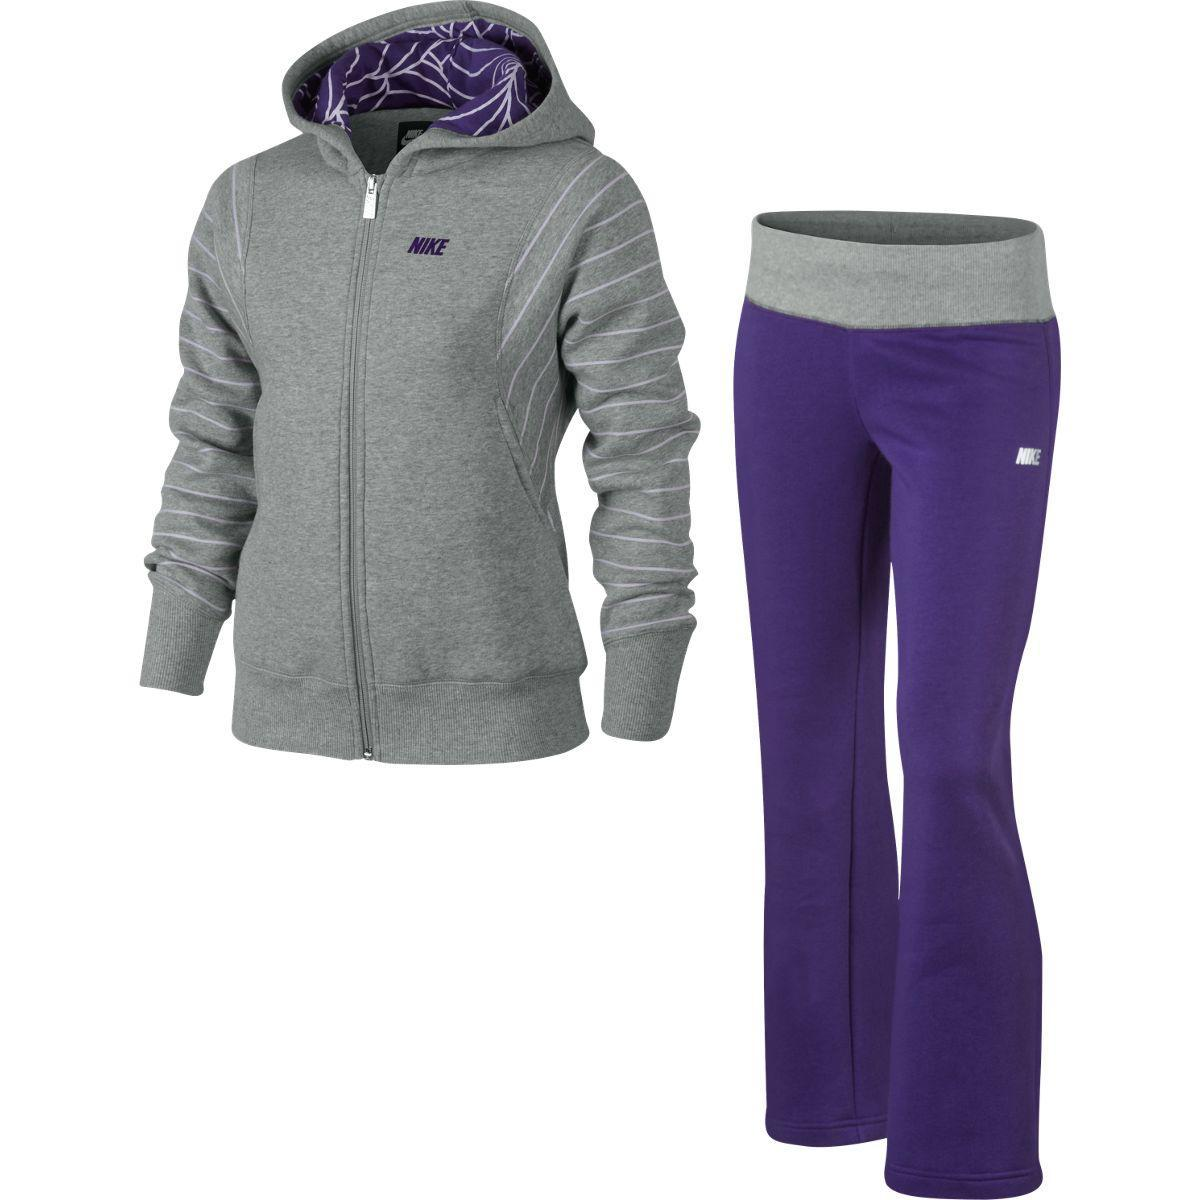 Nike Girls YA76 Tri Graphics Glam Brush Fleece Tracksuit - Grey Purple -  Tennisnuts.com daa434dd8cbc